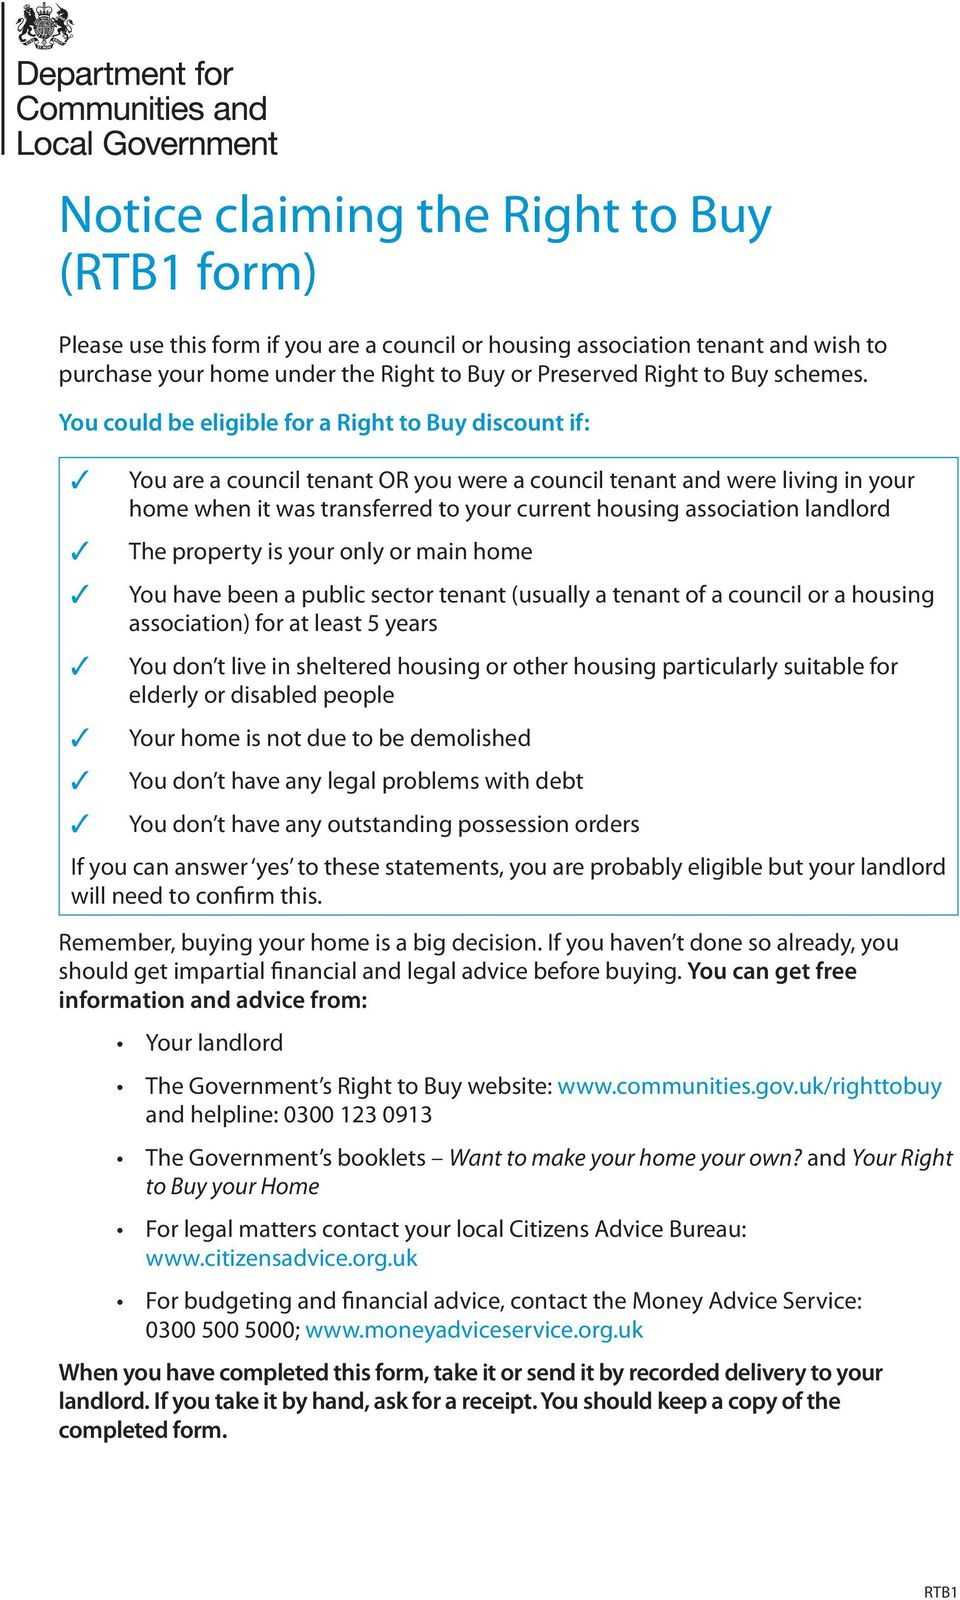 You could be eligible for a Right to Buy discount if: You are a council tenant OR you were a council tenant and were living in your home when it was transferred to your current housing association